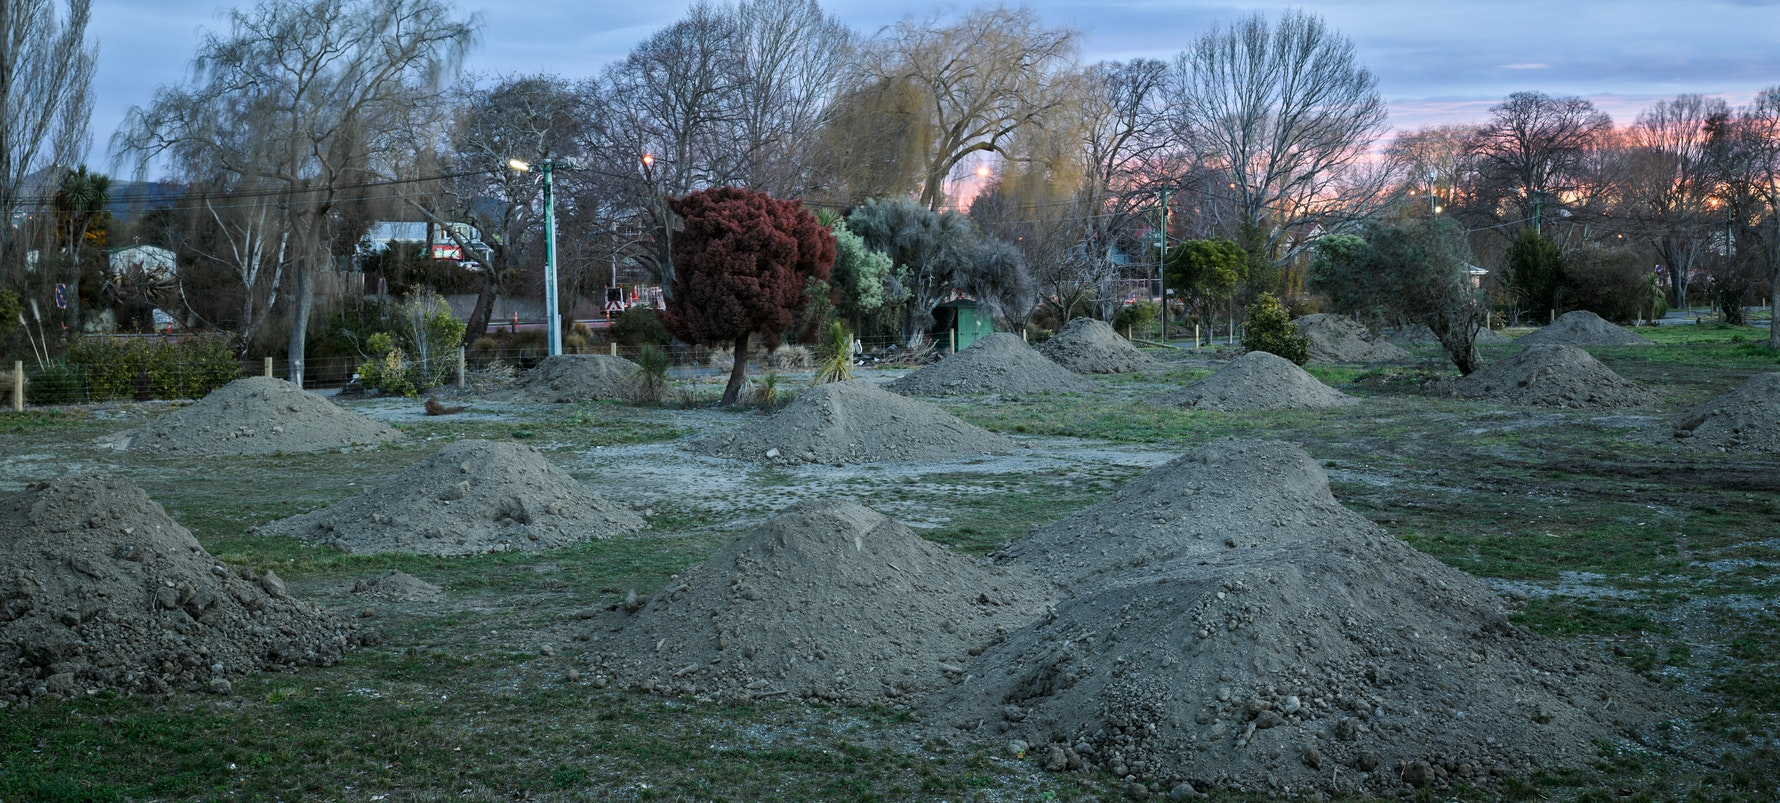 River Road, Avonside / Richmond, 2015. New soil for levelling of cleared land.